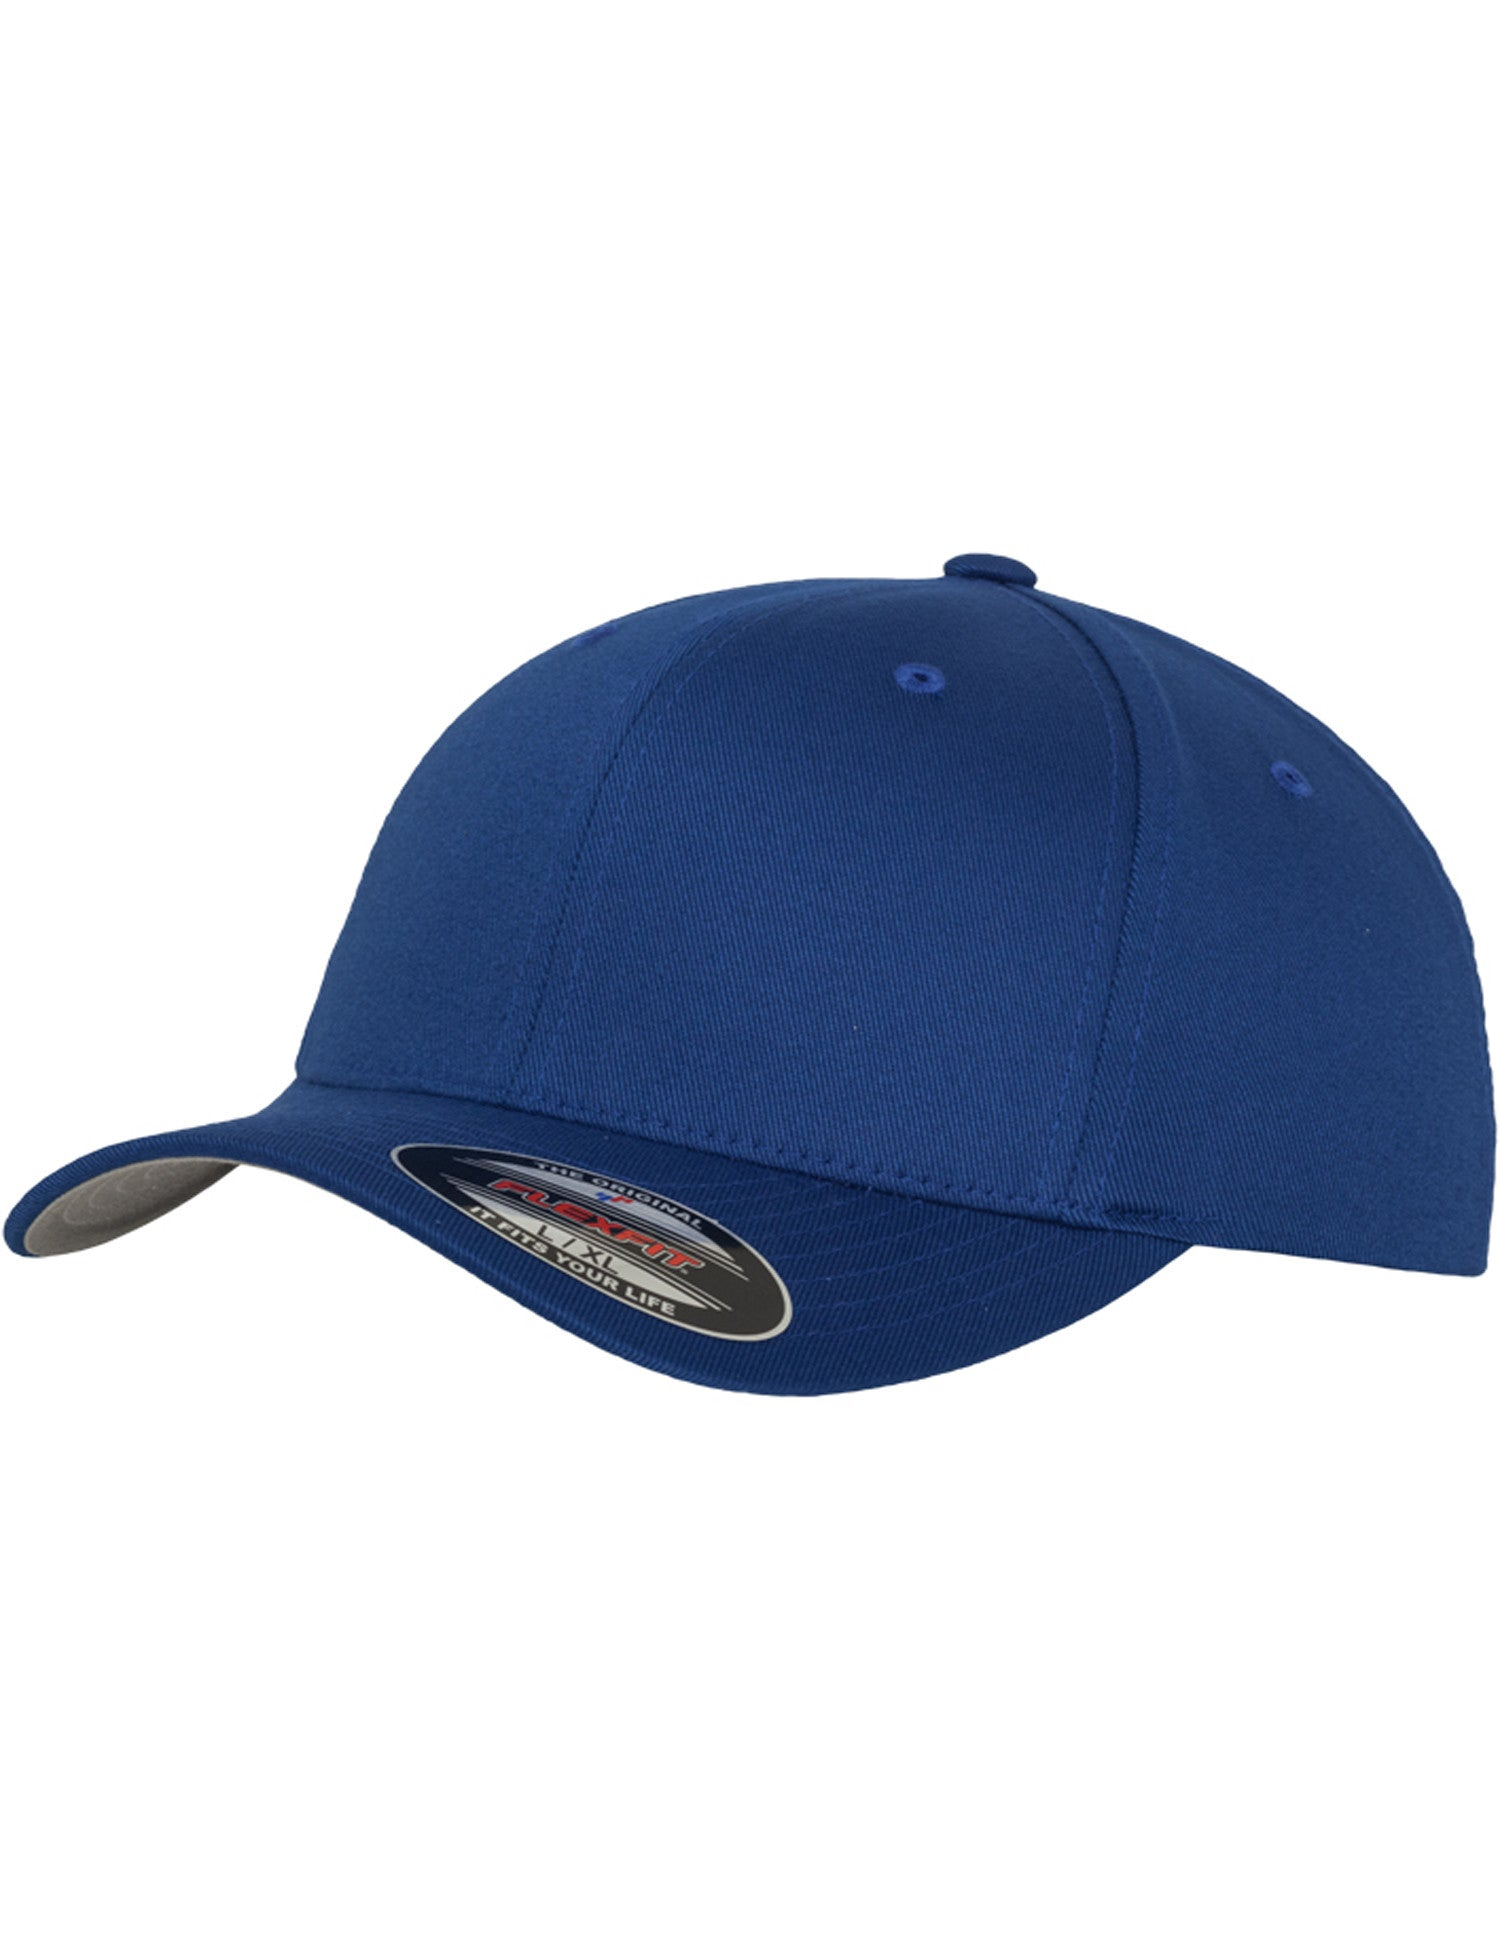 FLEXFIT WOOLY COMBED CAPS Blue